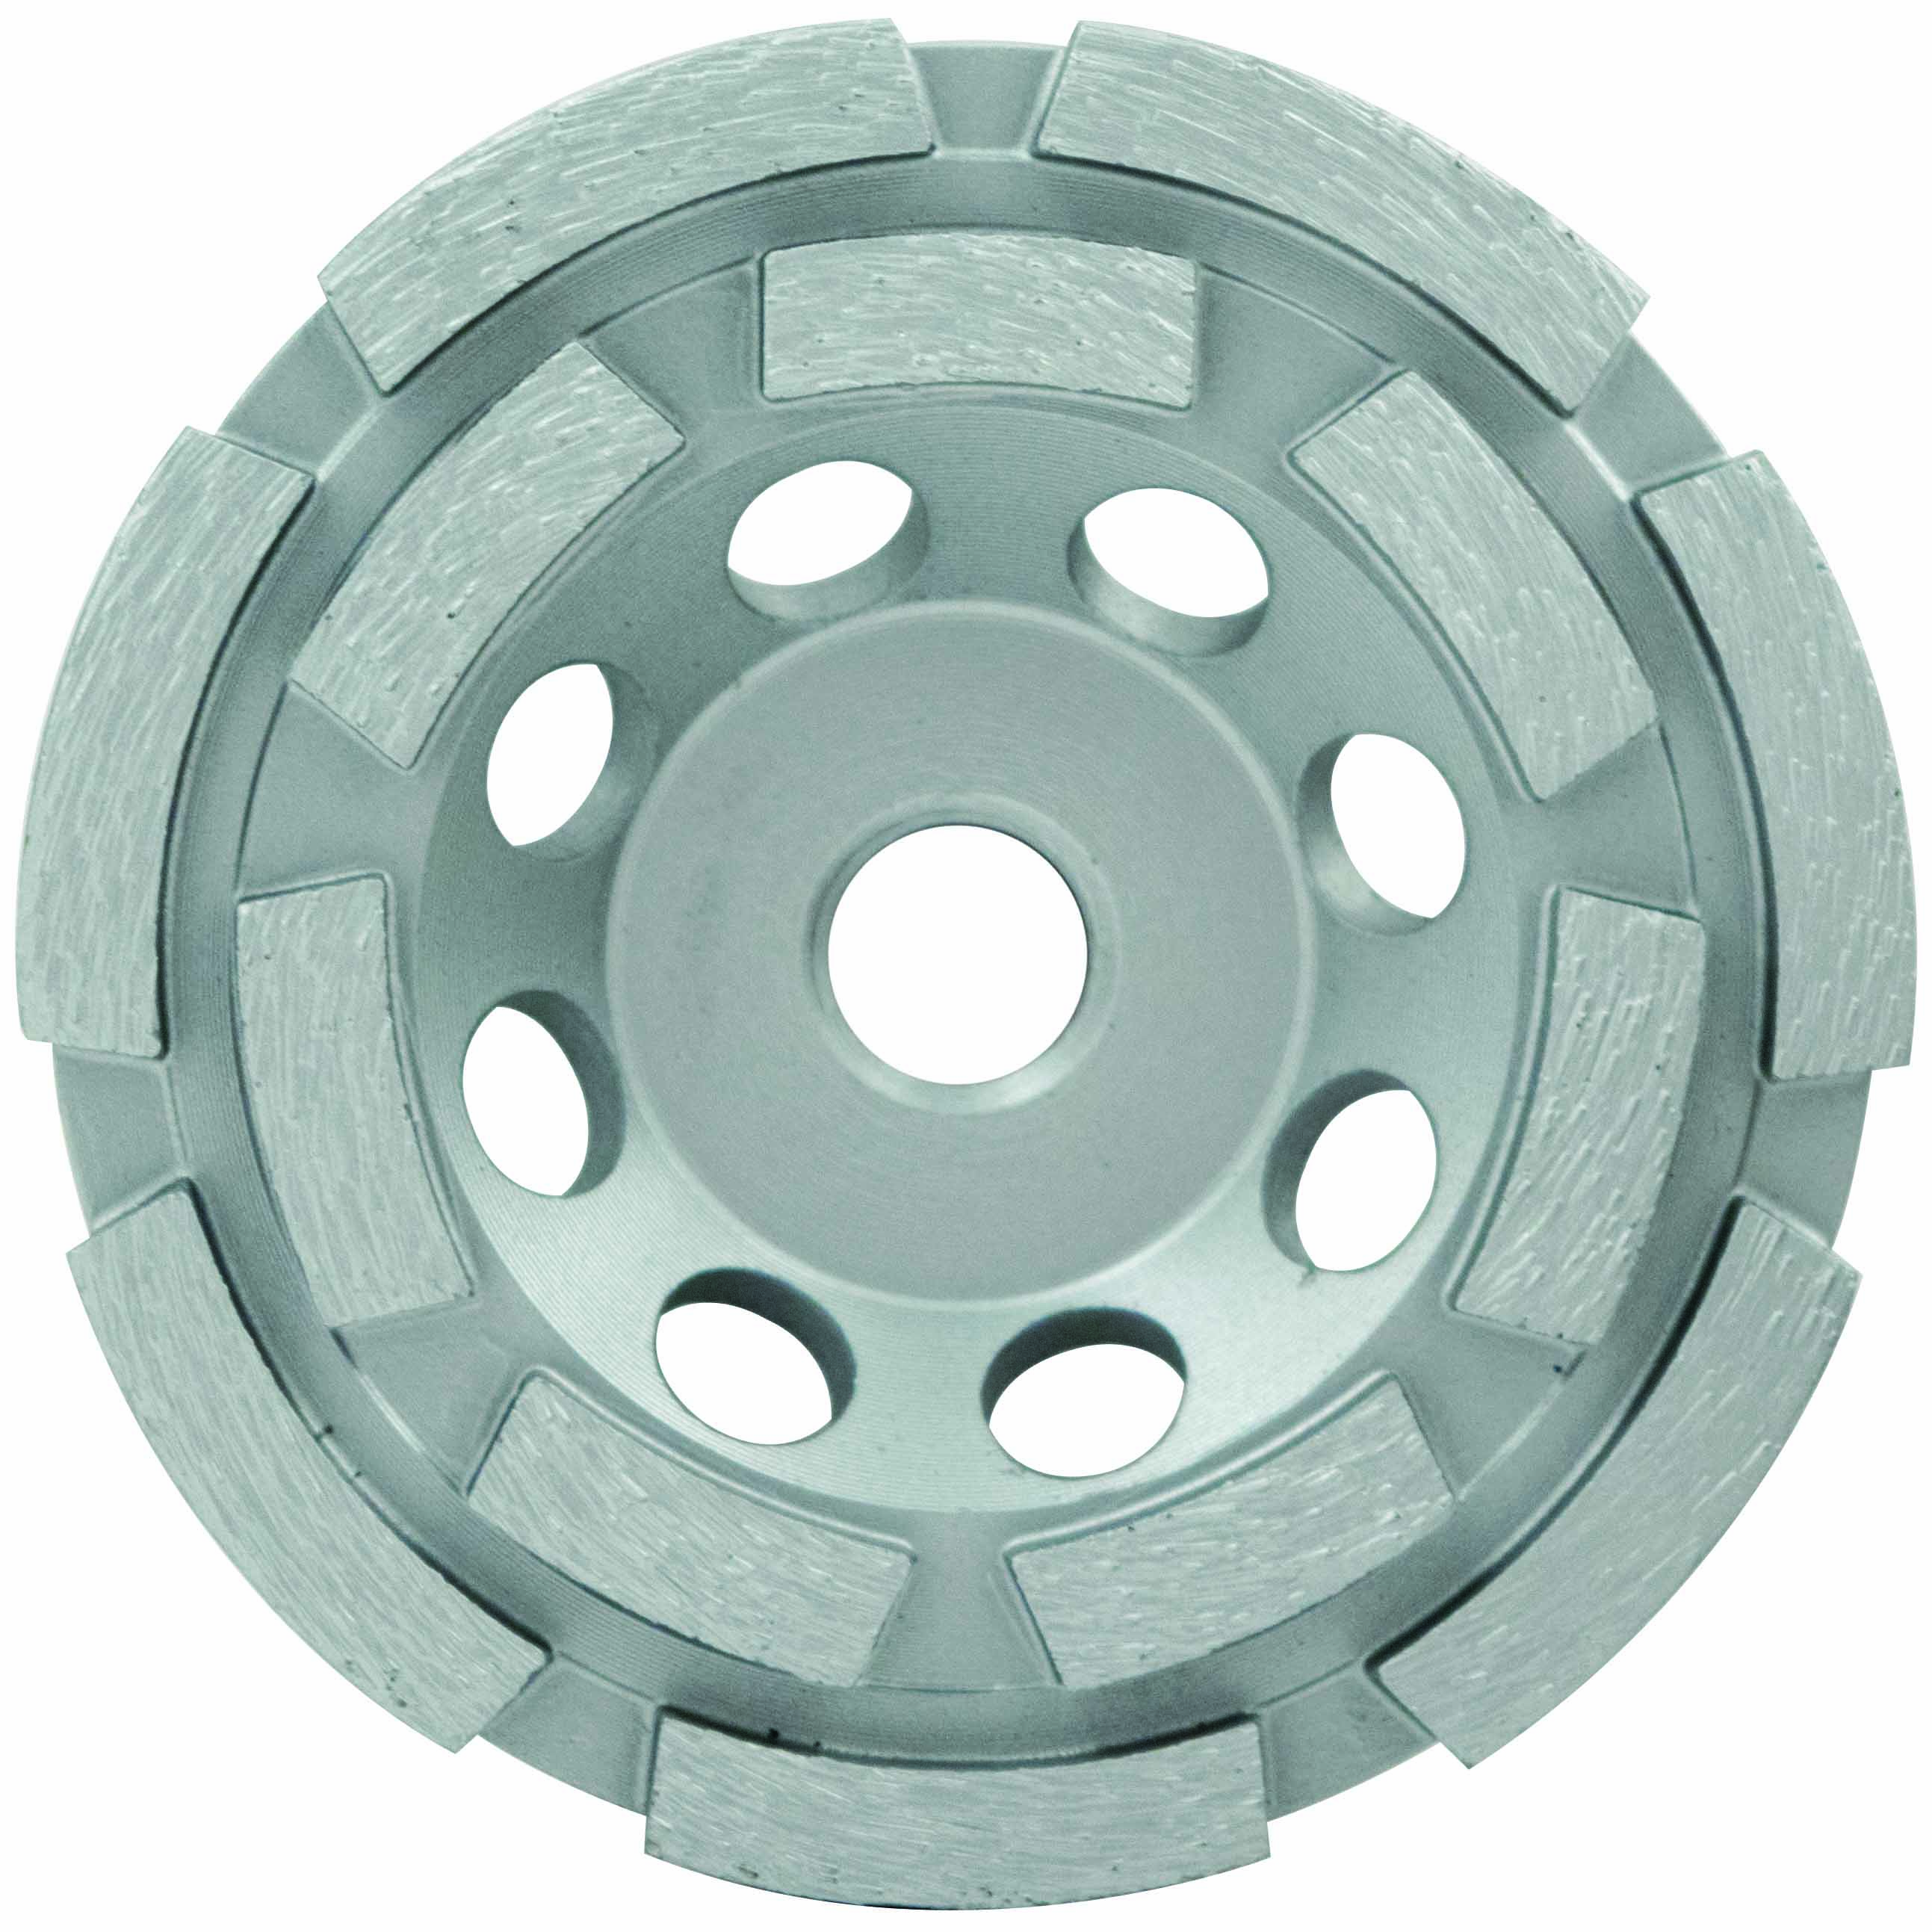 Lackmond SPPGC4DNLP 4in.x5/8-11 Double row cup wheel, low profile  LAC-SPPGC4DNLP